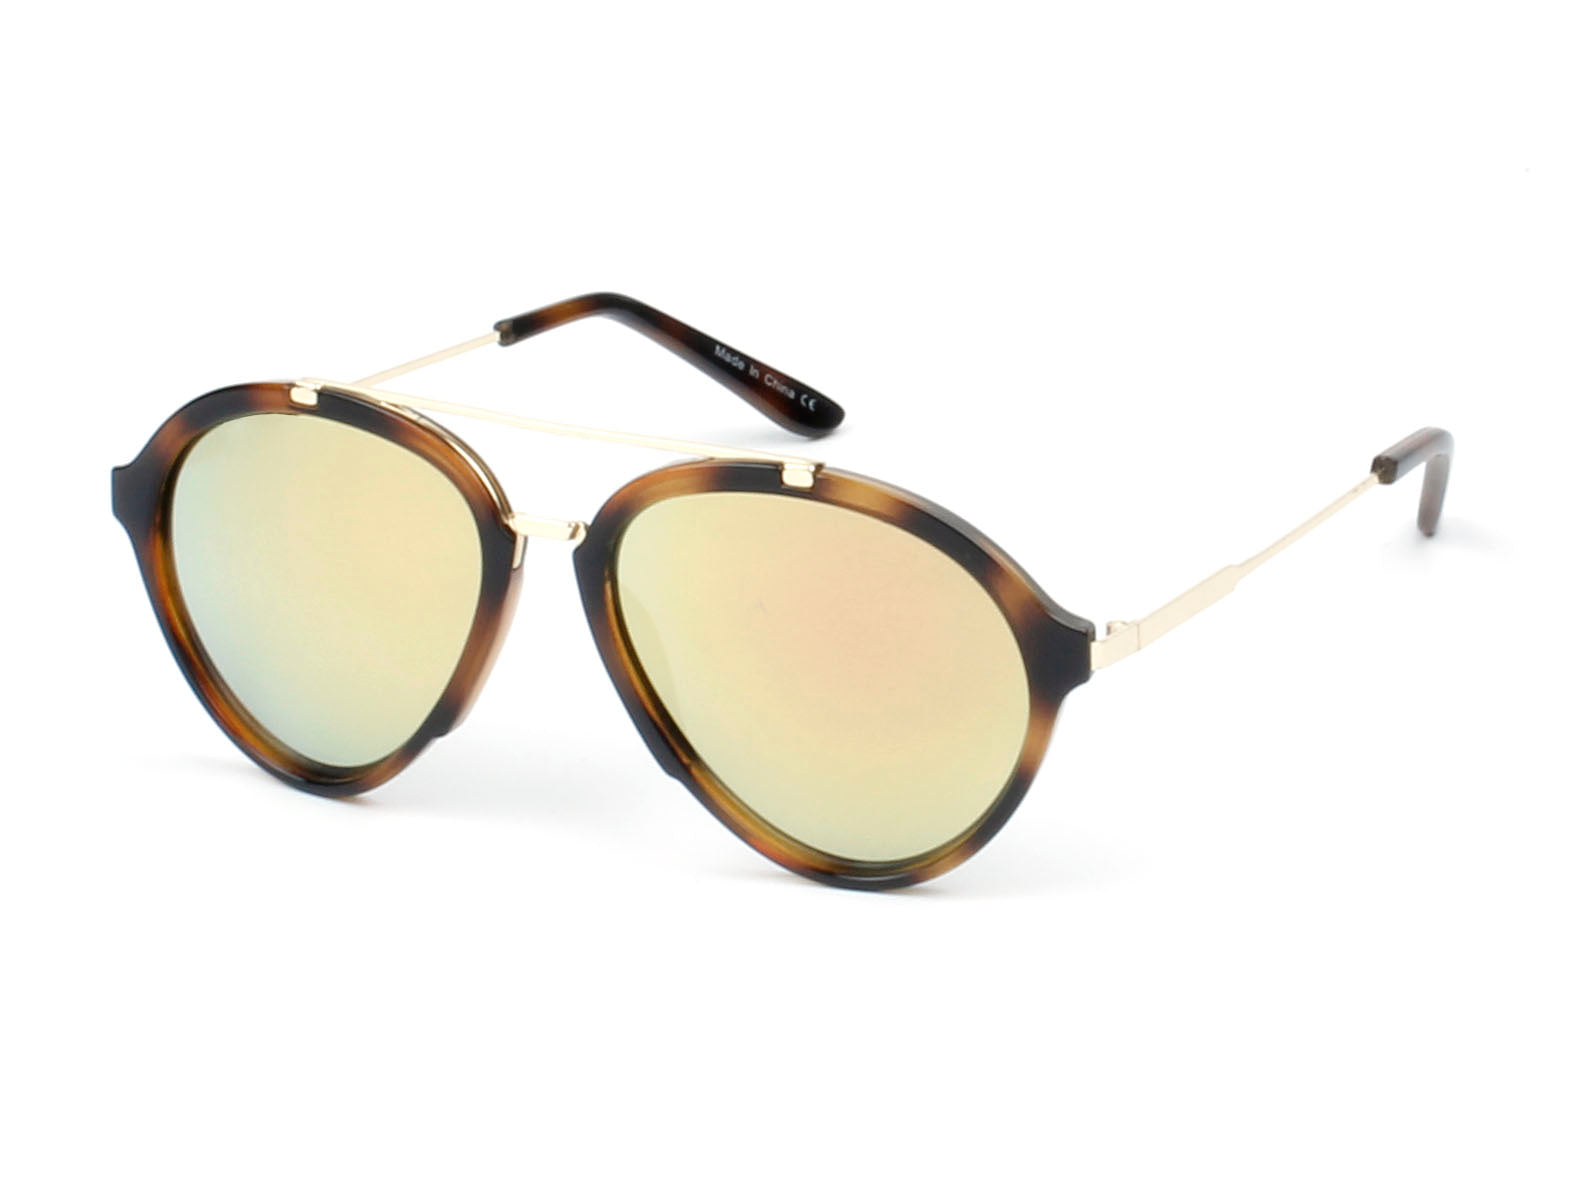 Women Mirrored Round Fashion Sunglasses - Tortoise